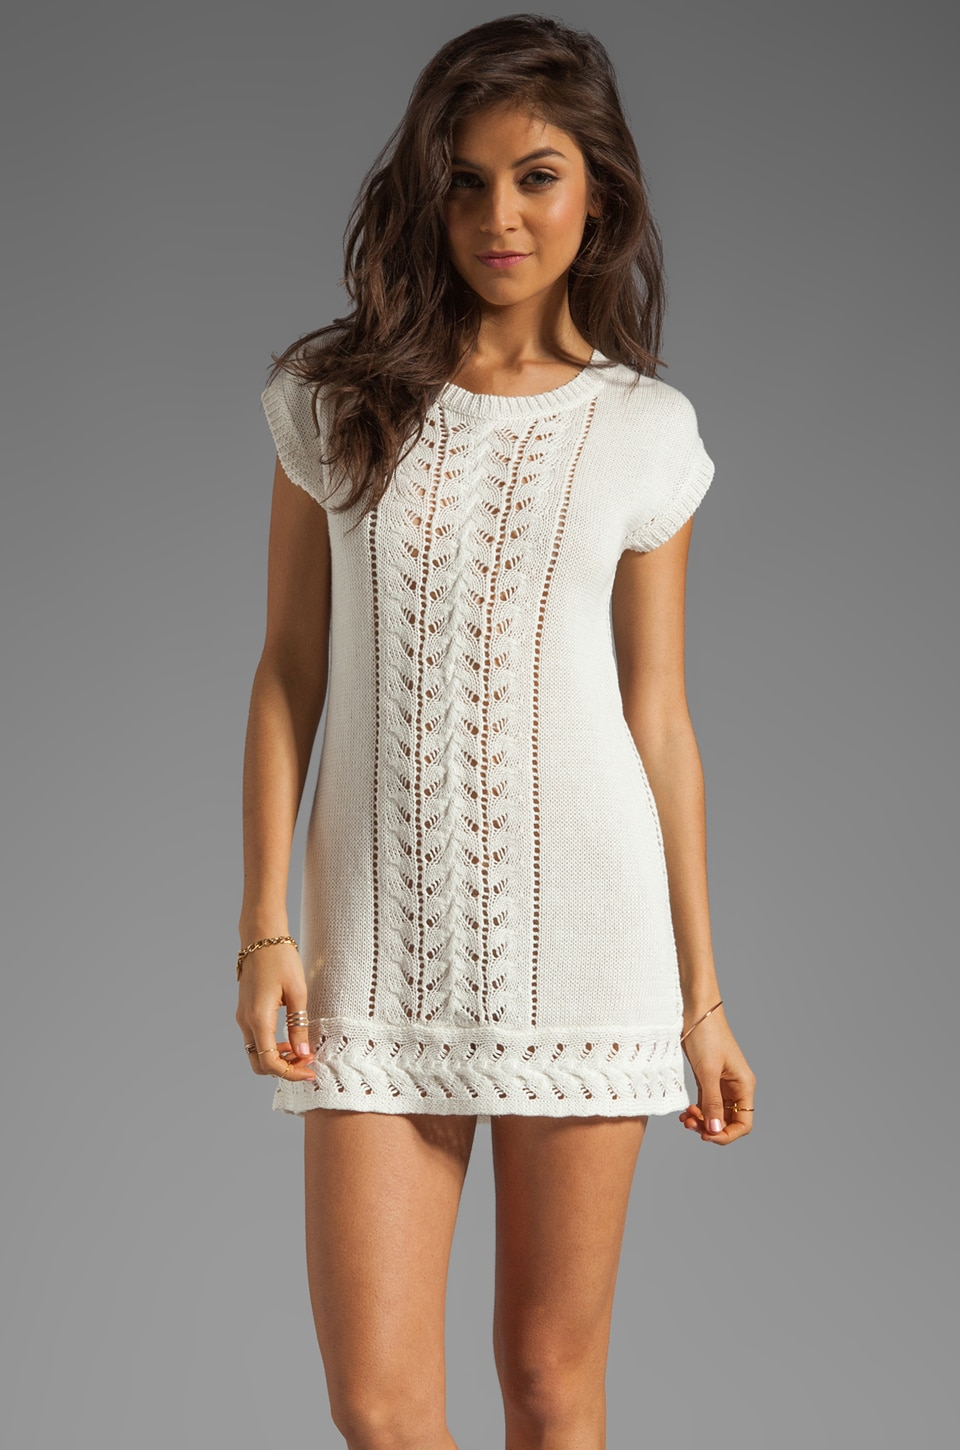 Nanette Lepore Tumbleweed Knit Riding Tunic in Ivory and Black